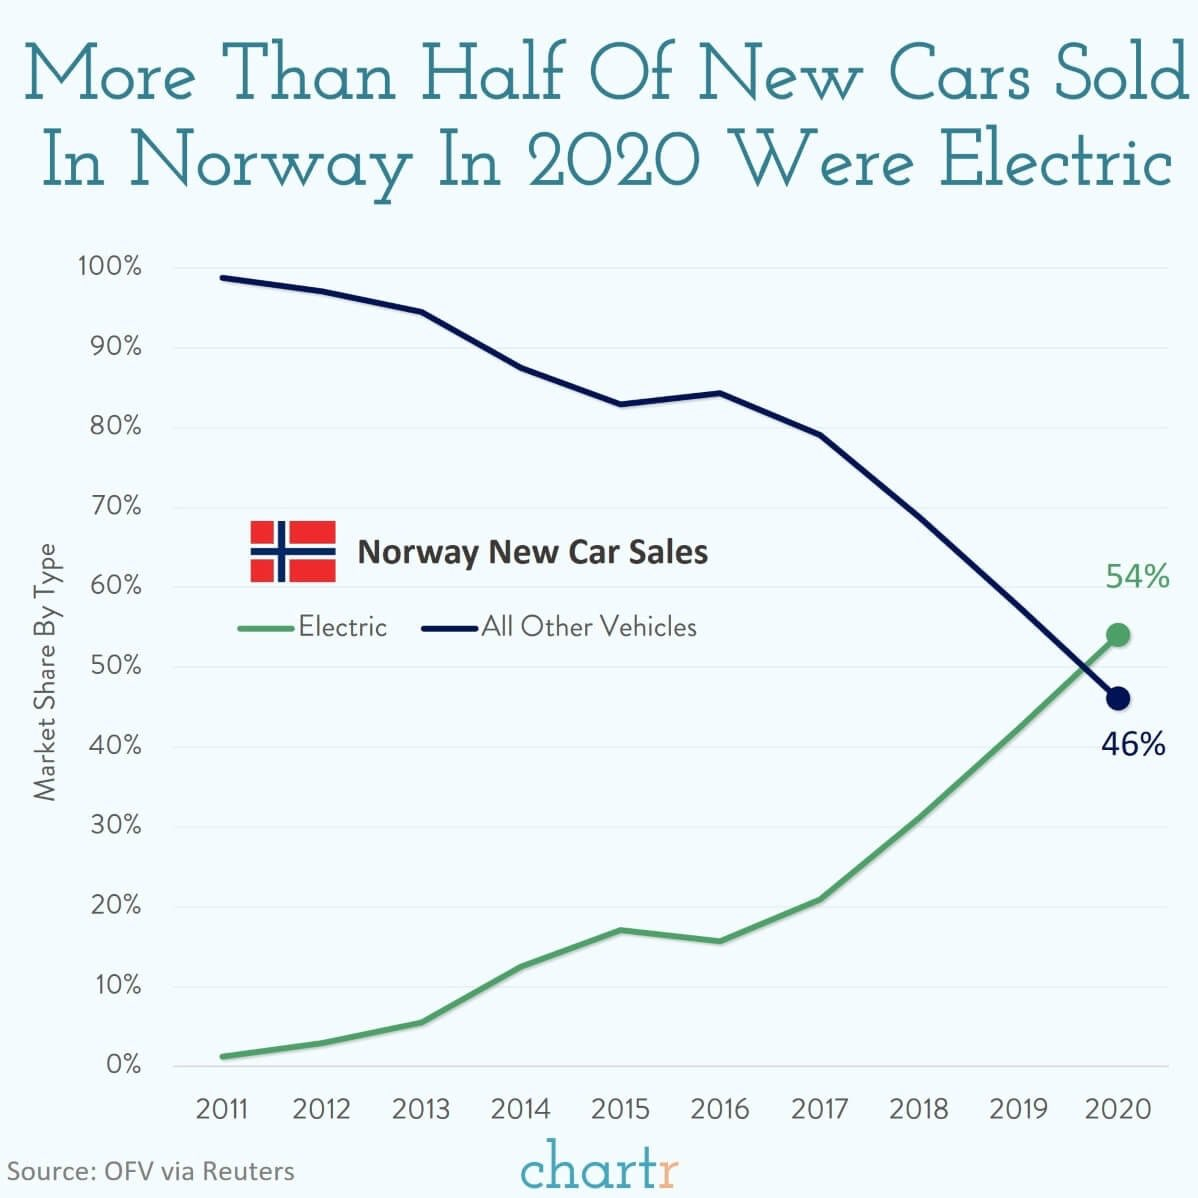 As goes Norway, so will the world... https://t.co/6wbwhhtN8W